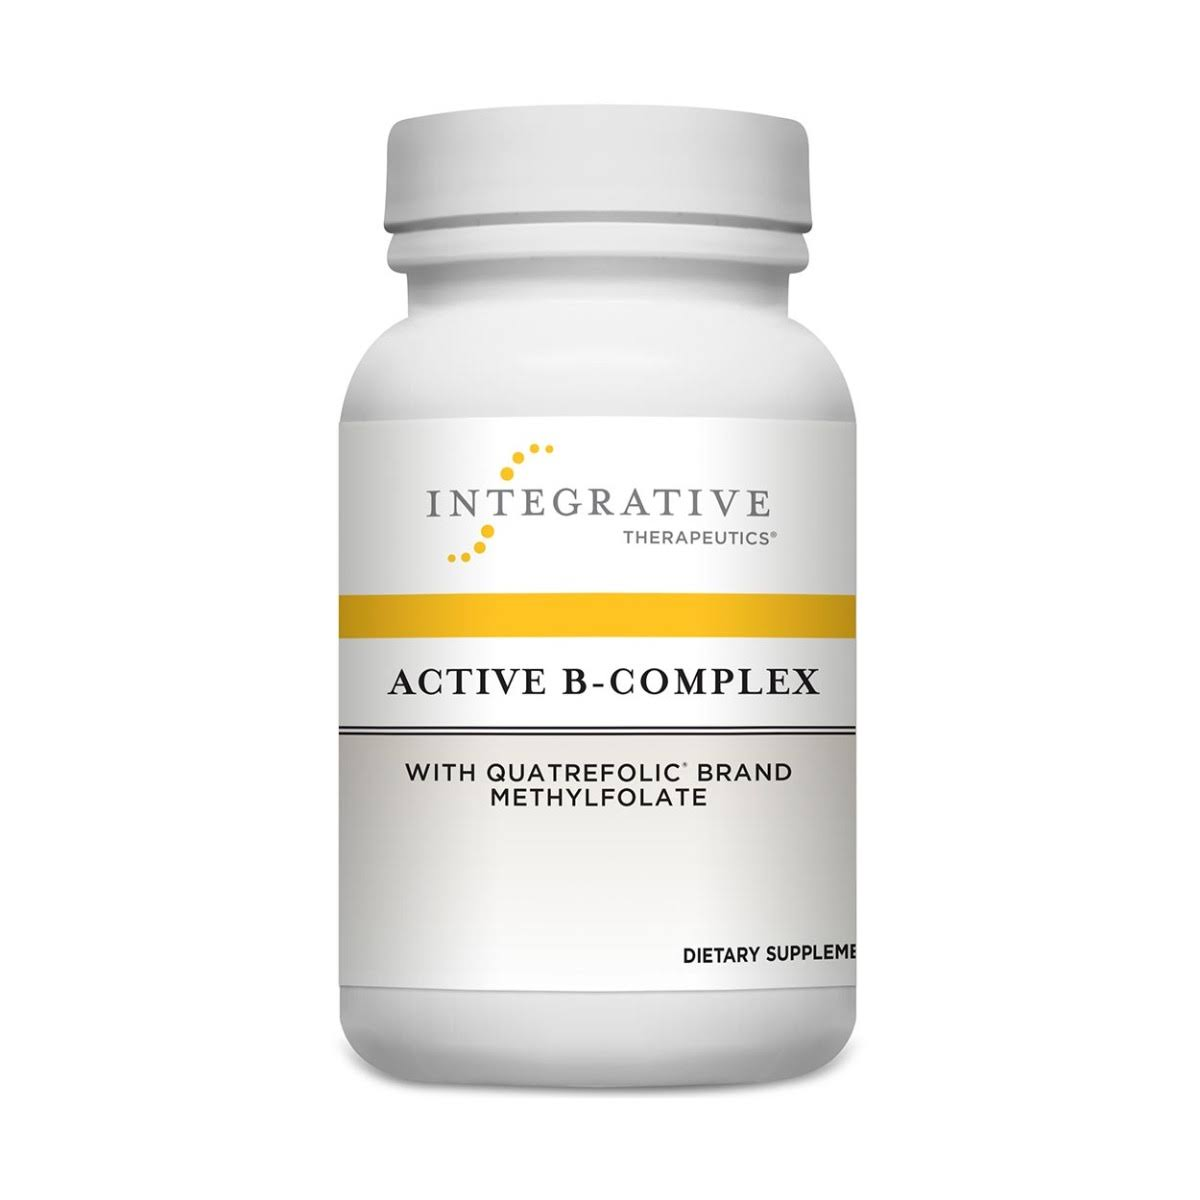 Integrative Theraputics Active B-Complex - 60 Count